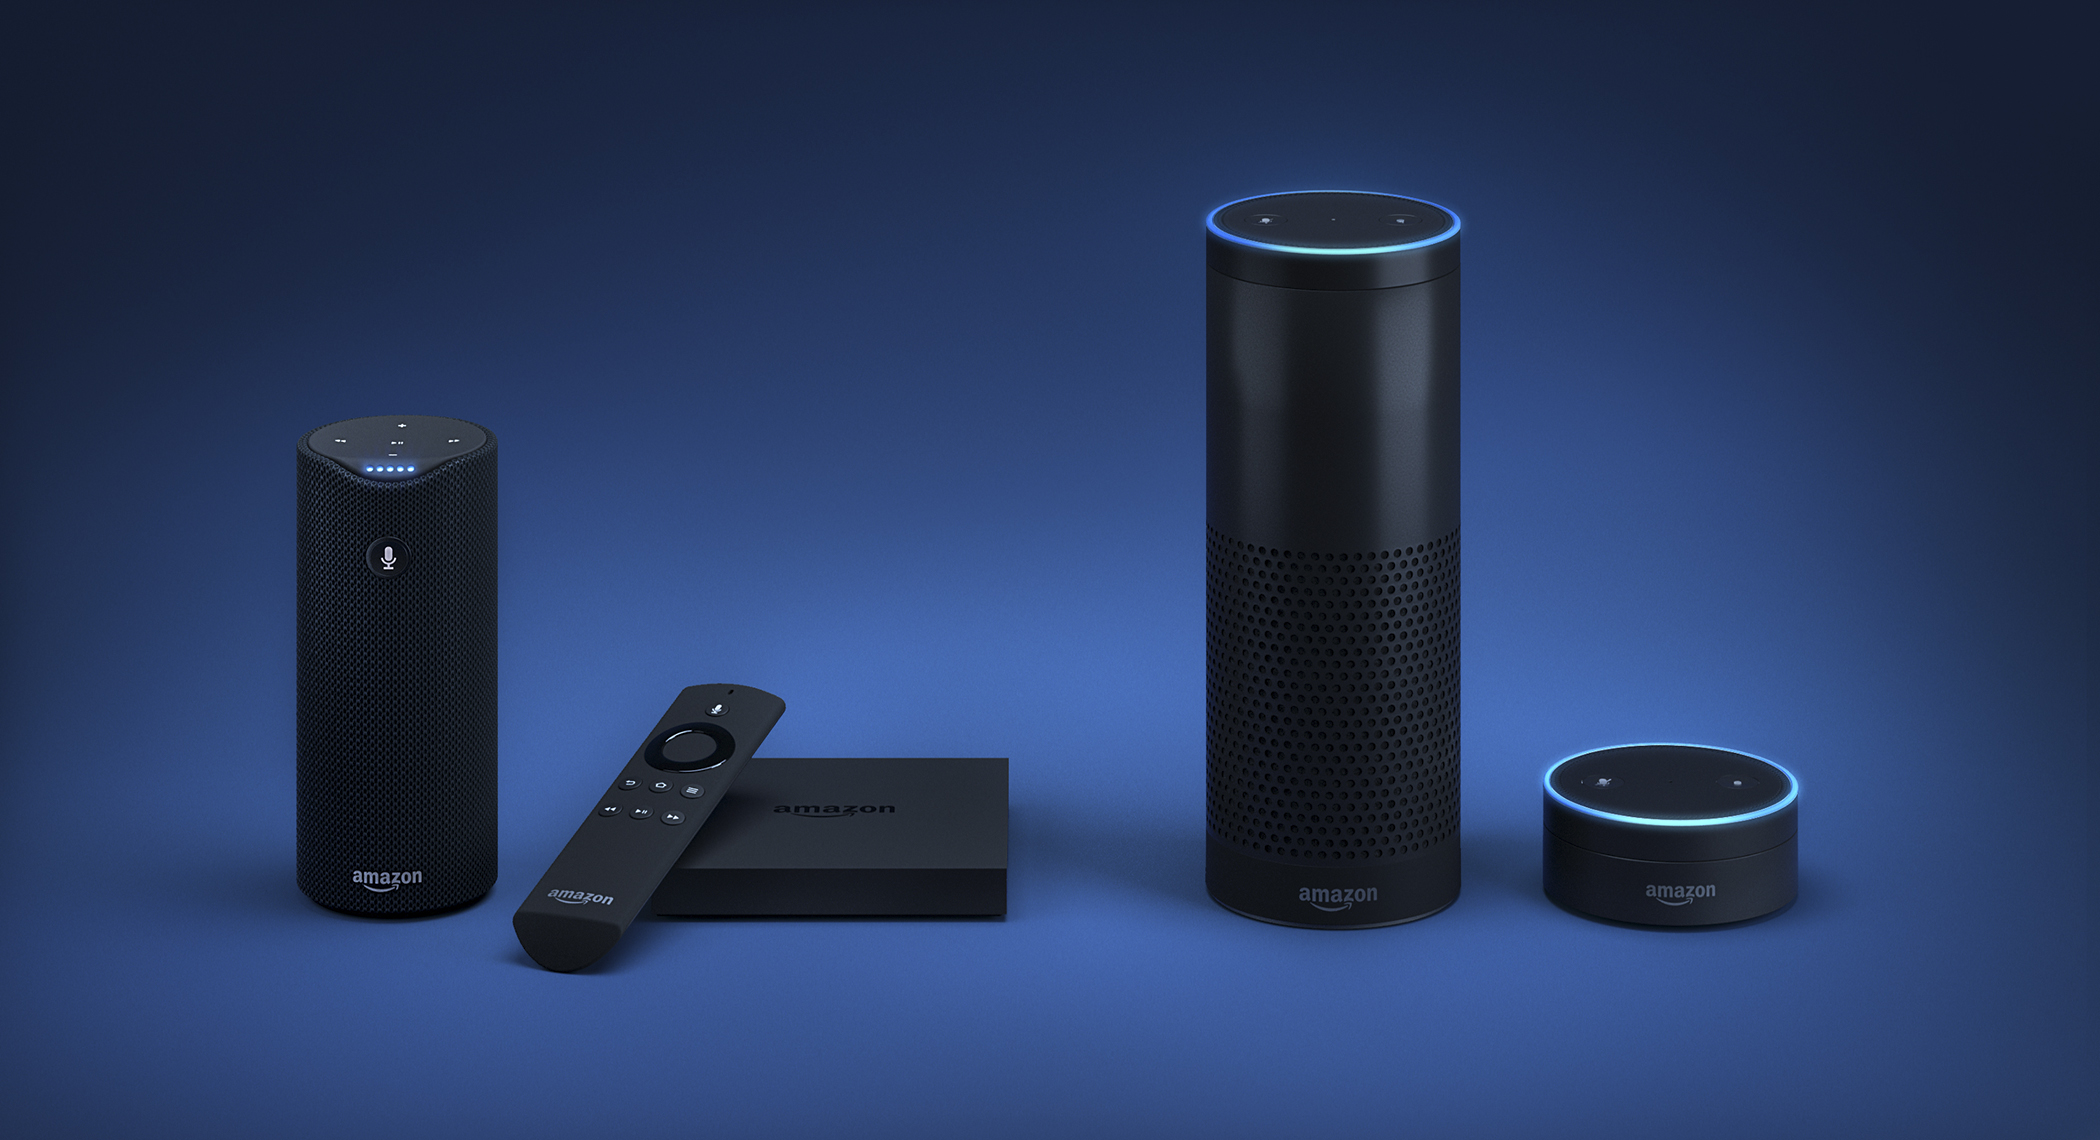 Amazon Alexa Echo family